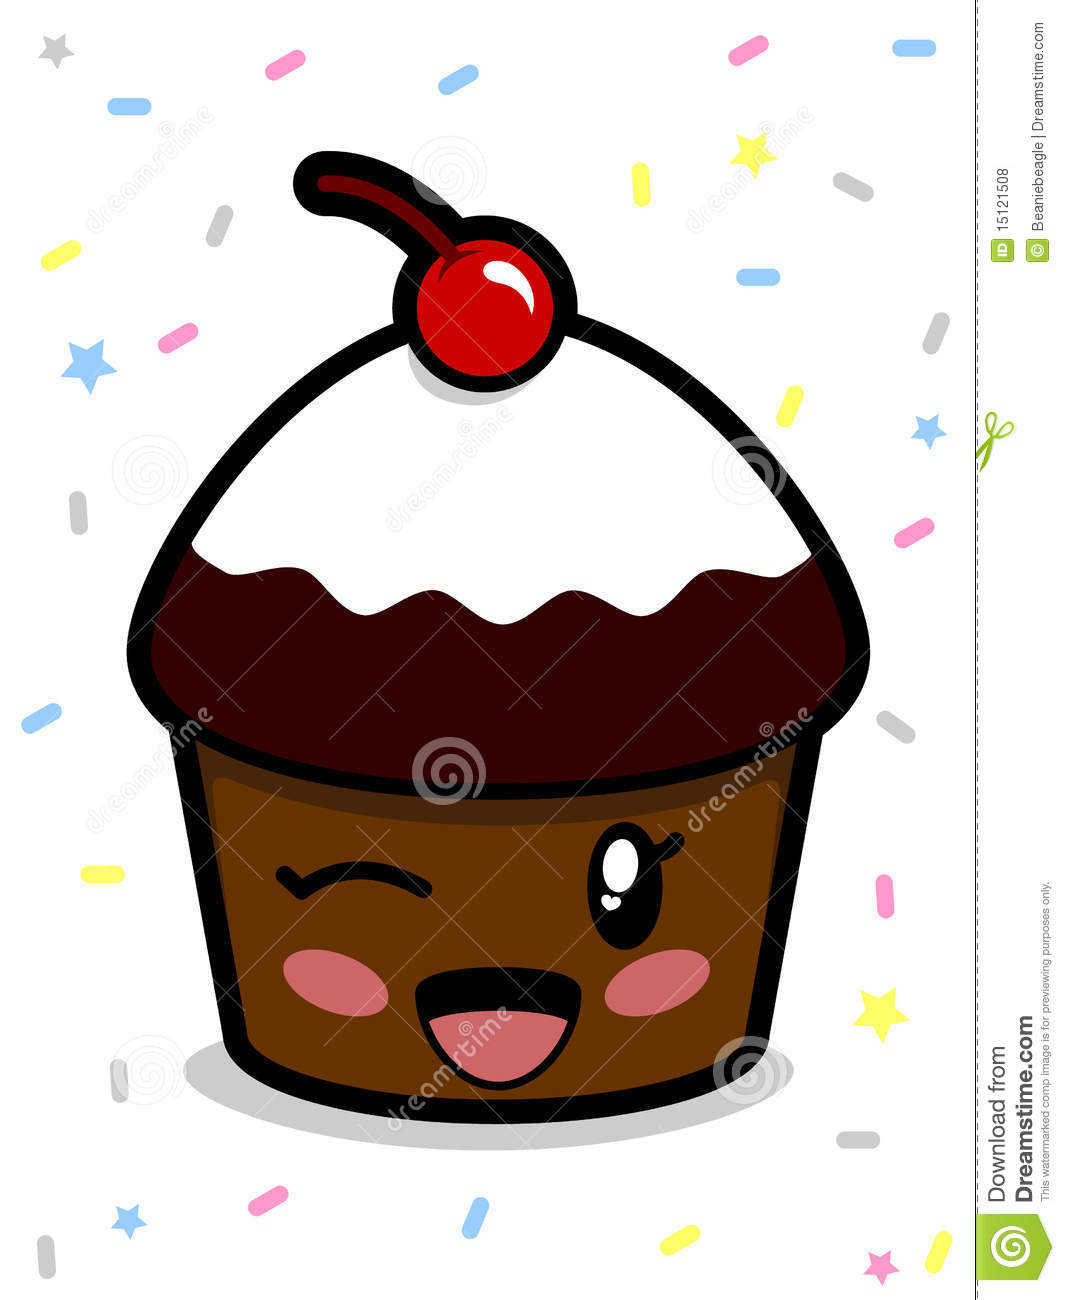 Cute Chocolate Cake Images : Cute Chocolate Cupcake stock vector. Image of ...